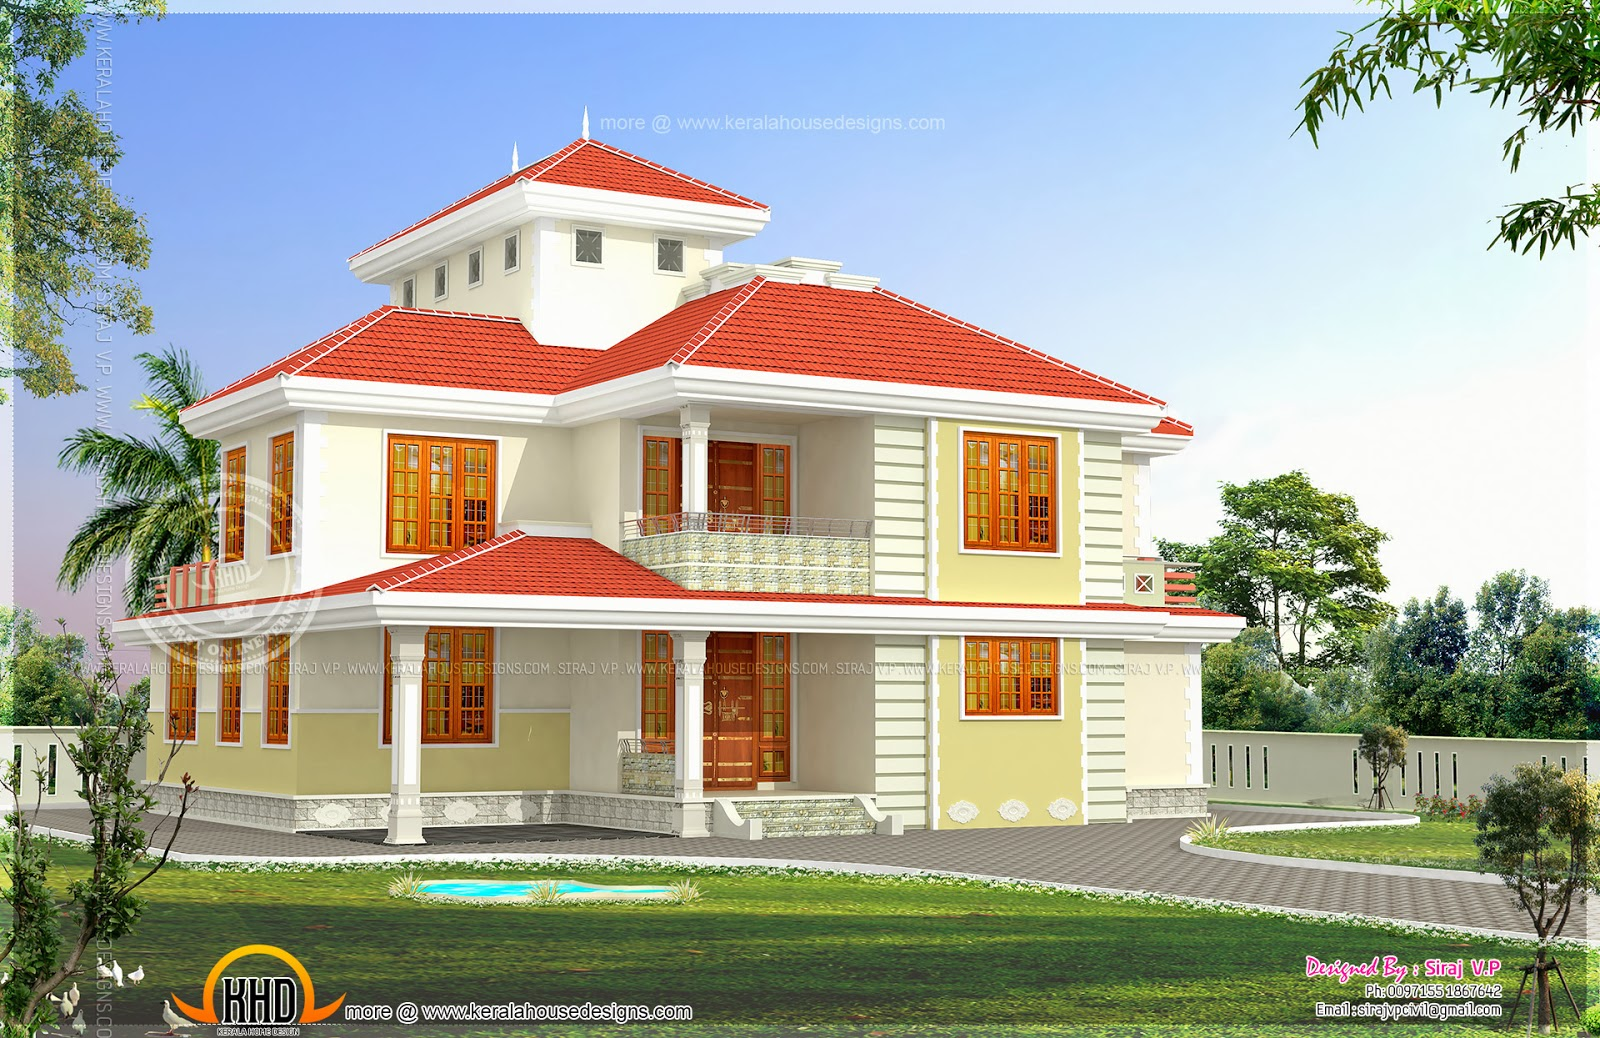 5 bedroom luxury house in kasaragod keralahousedesigns for Home design 900 square